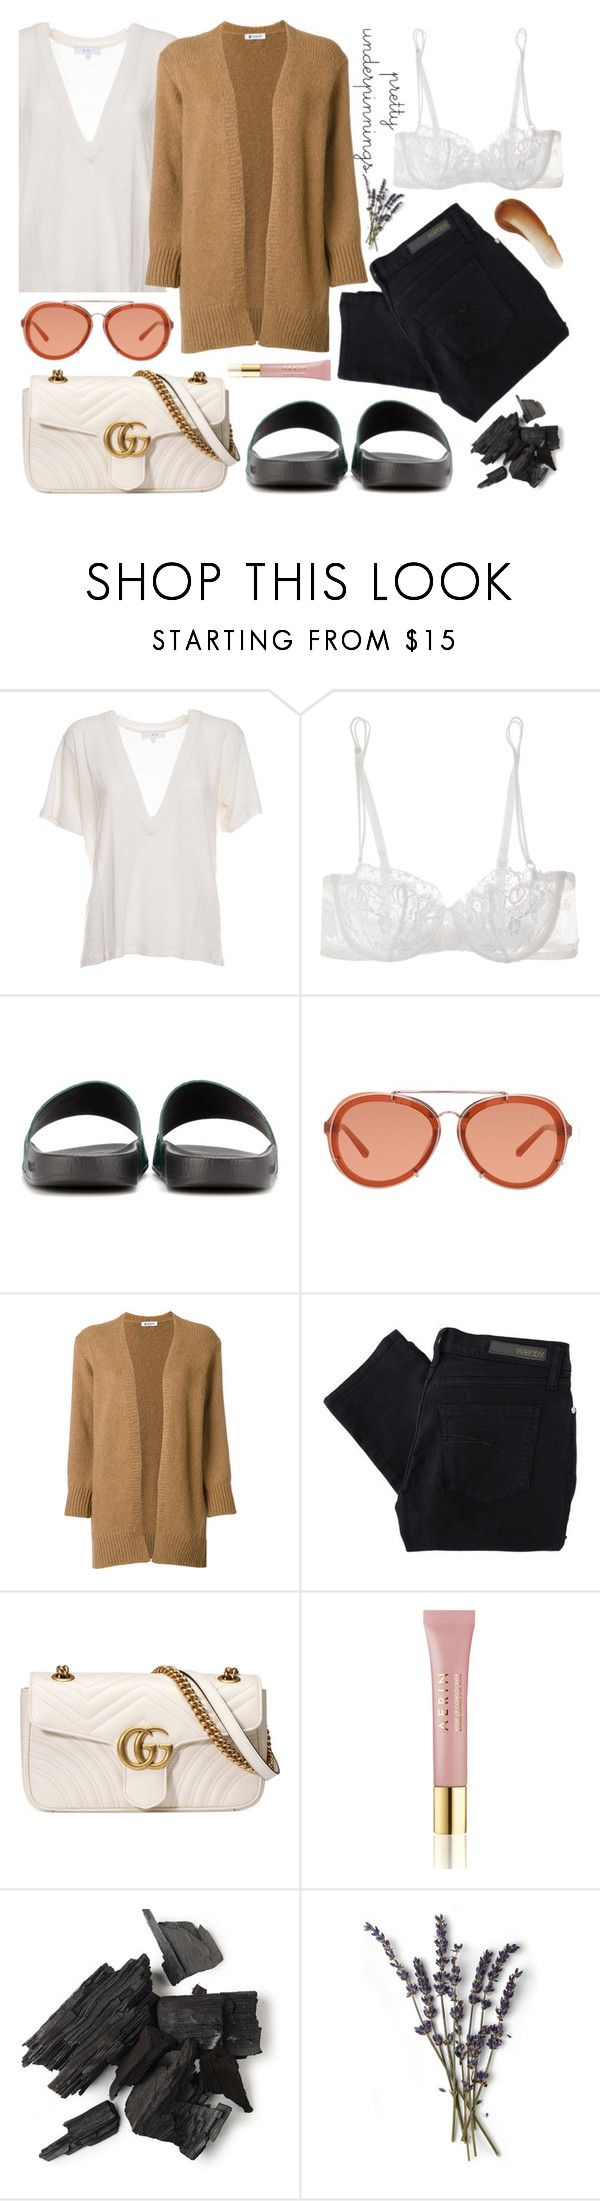 """""""Everyday, all day"""" by carolsposito ❤ liked on Polyvore featuring IRO, La Perla, Gucci, 3.1 Phillip Lim, Dondup, Nobody Denim, AERIN and This Works"""